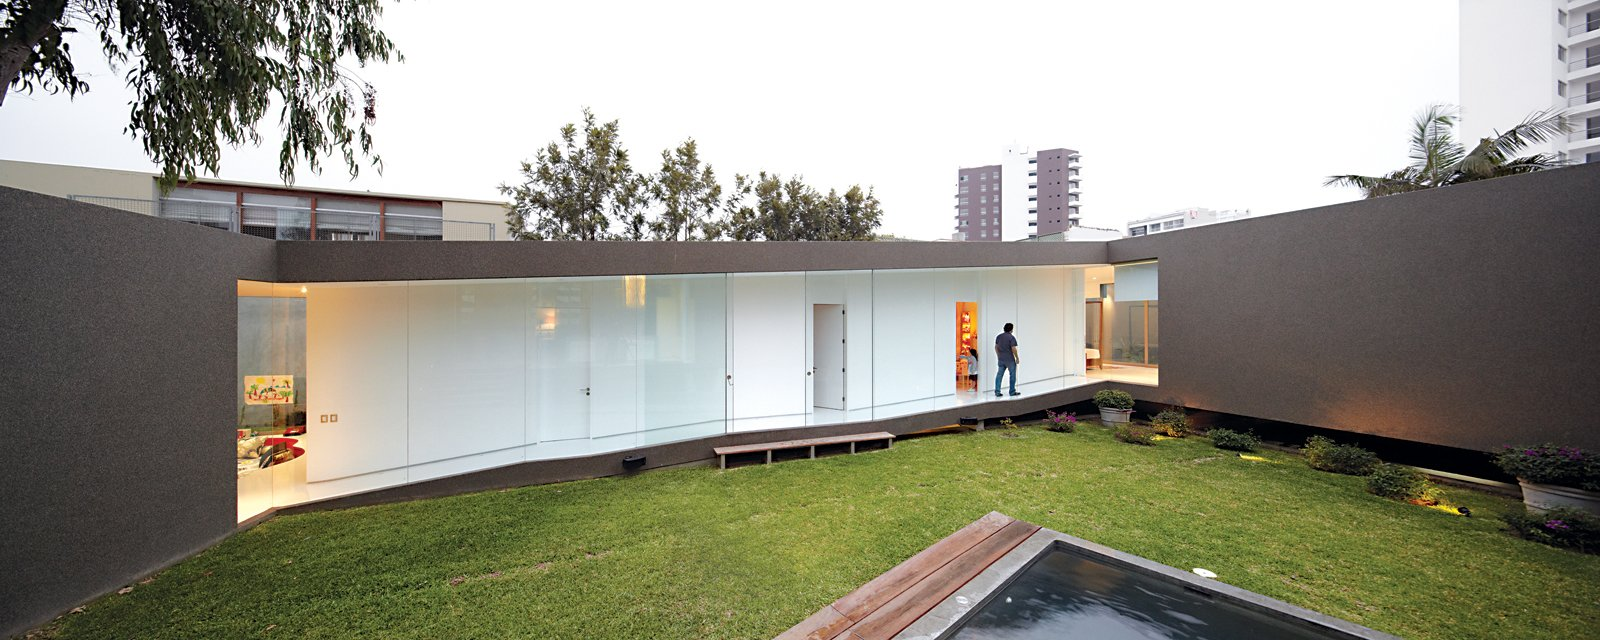 Exterior, House Building Type, and Concrete Siding Material At once part of the city and protected from it, the house benefits from plenty of open space and light and creates its own courtyard enclosure.  Photo 5 of 13 in A Modern Concrete Home in Peru